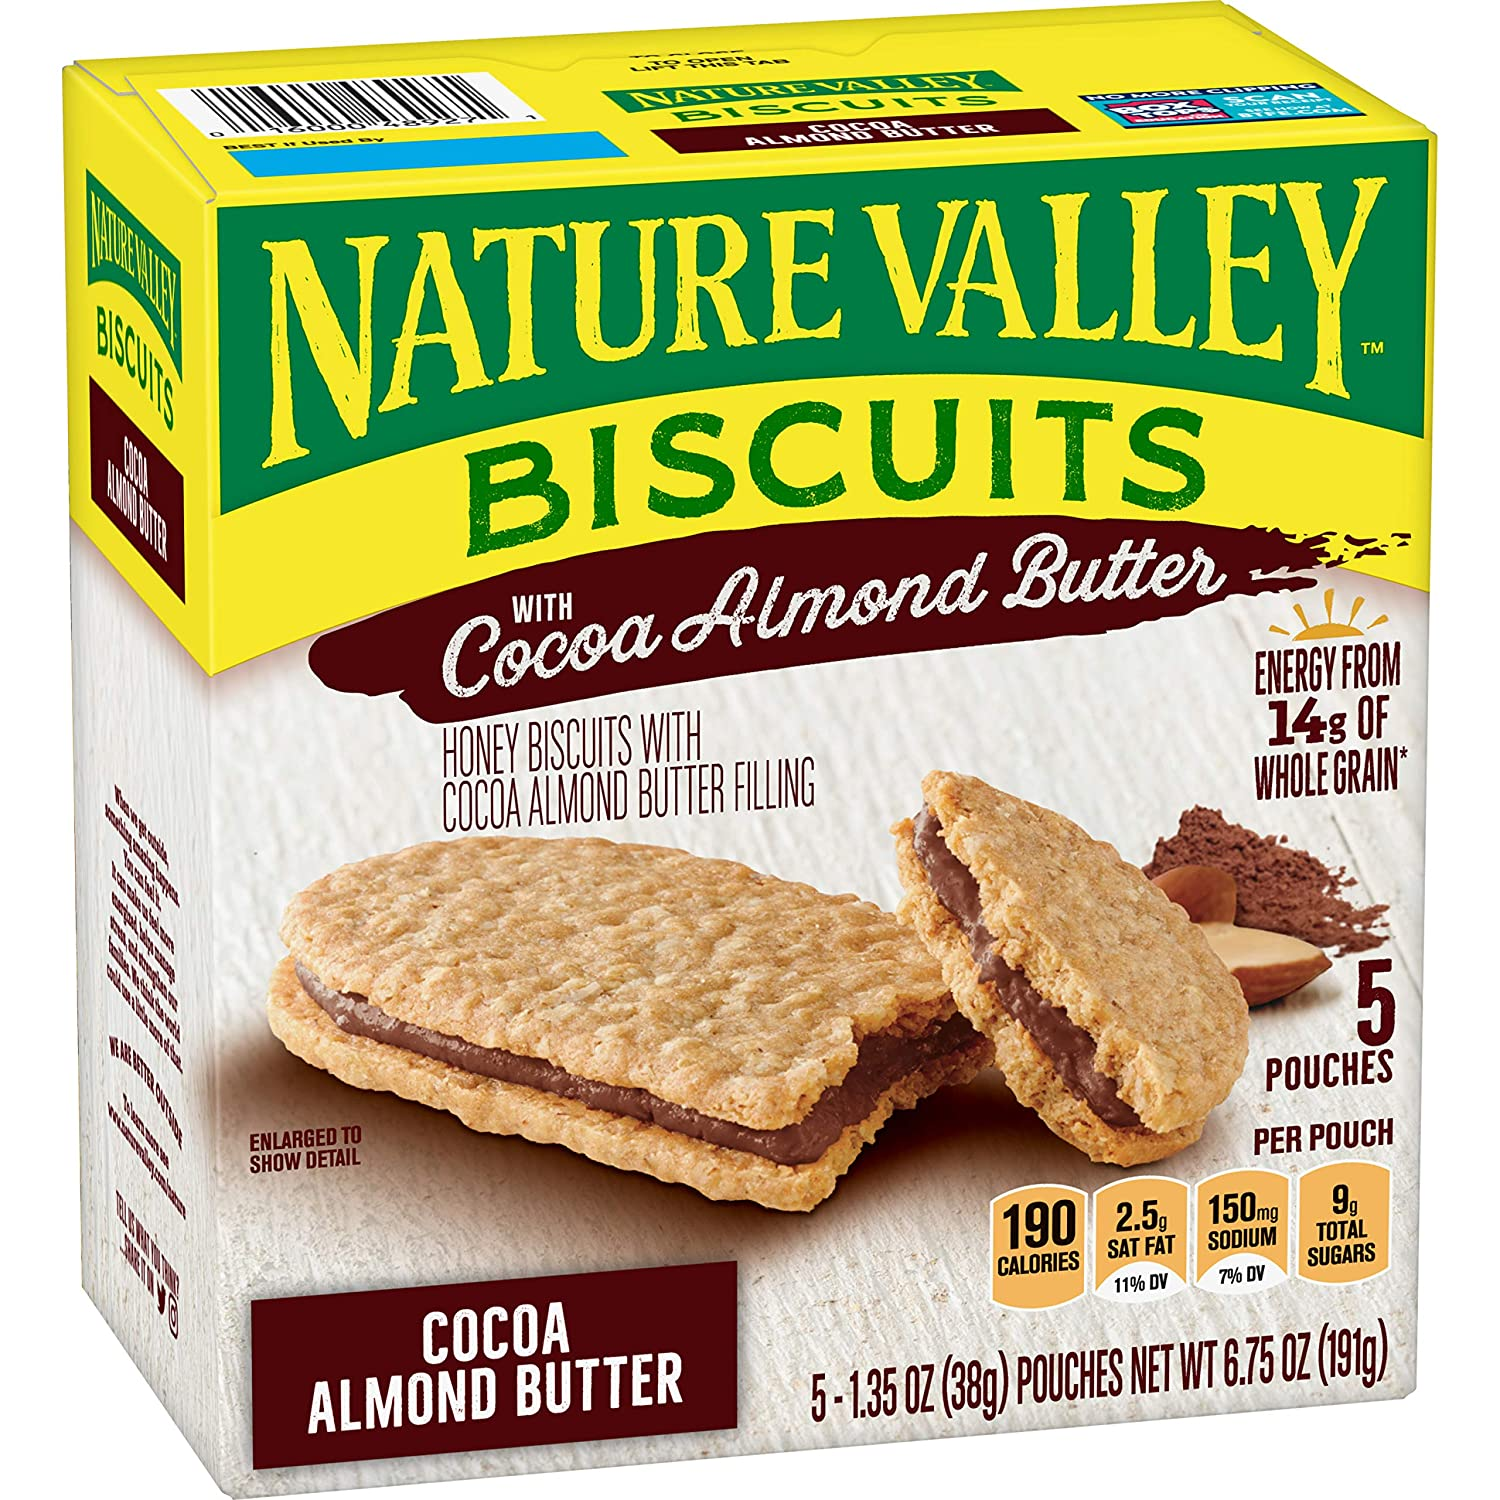 Nature Valley BiscuitsCocoa Almond Butter, Breakfast Biscuits with Nut Filling, 5 Pouches, 1.35 oz